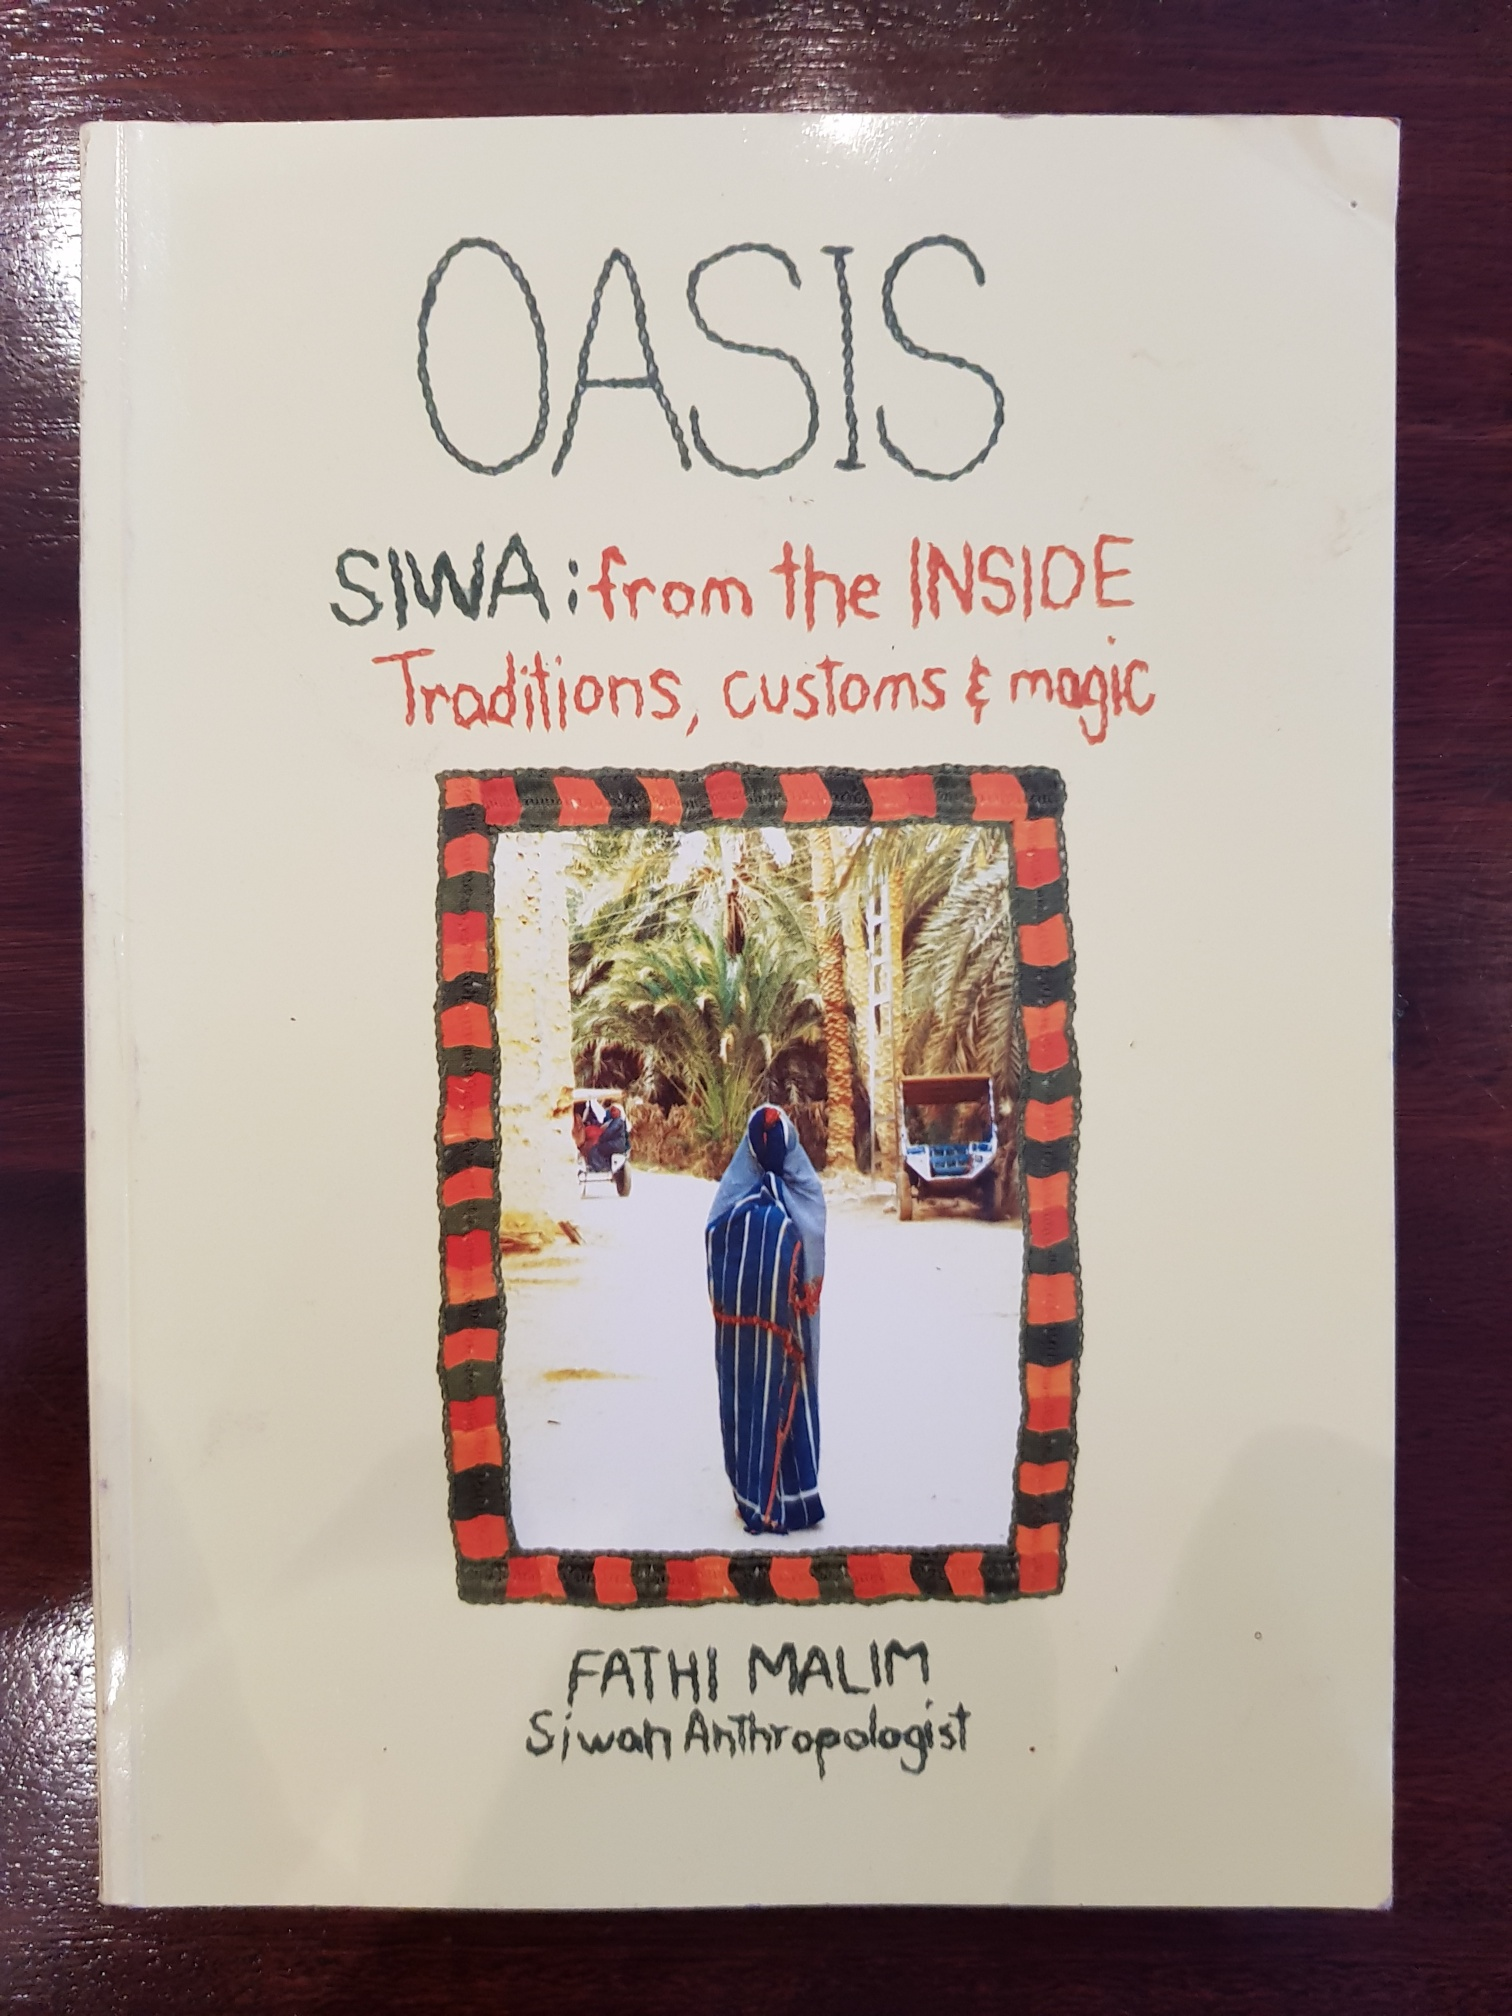 OASIS Siwa: From the Inside: Traditions, Customs & Magic